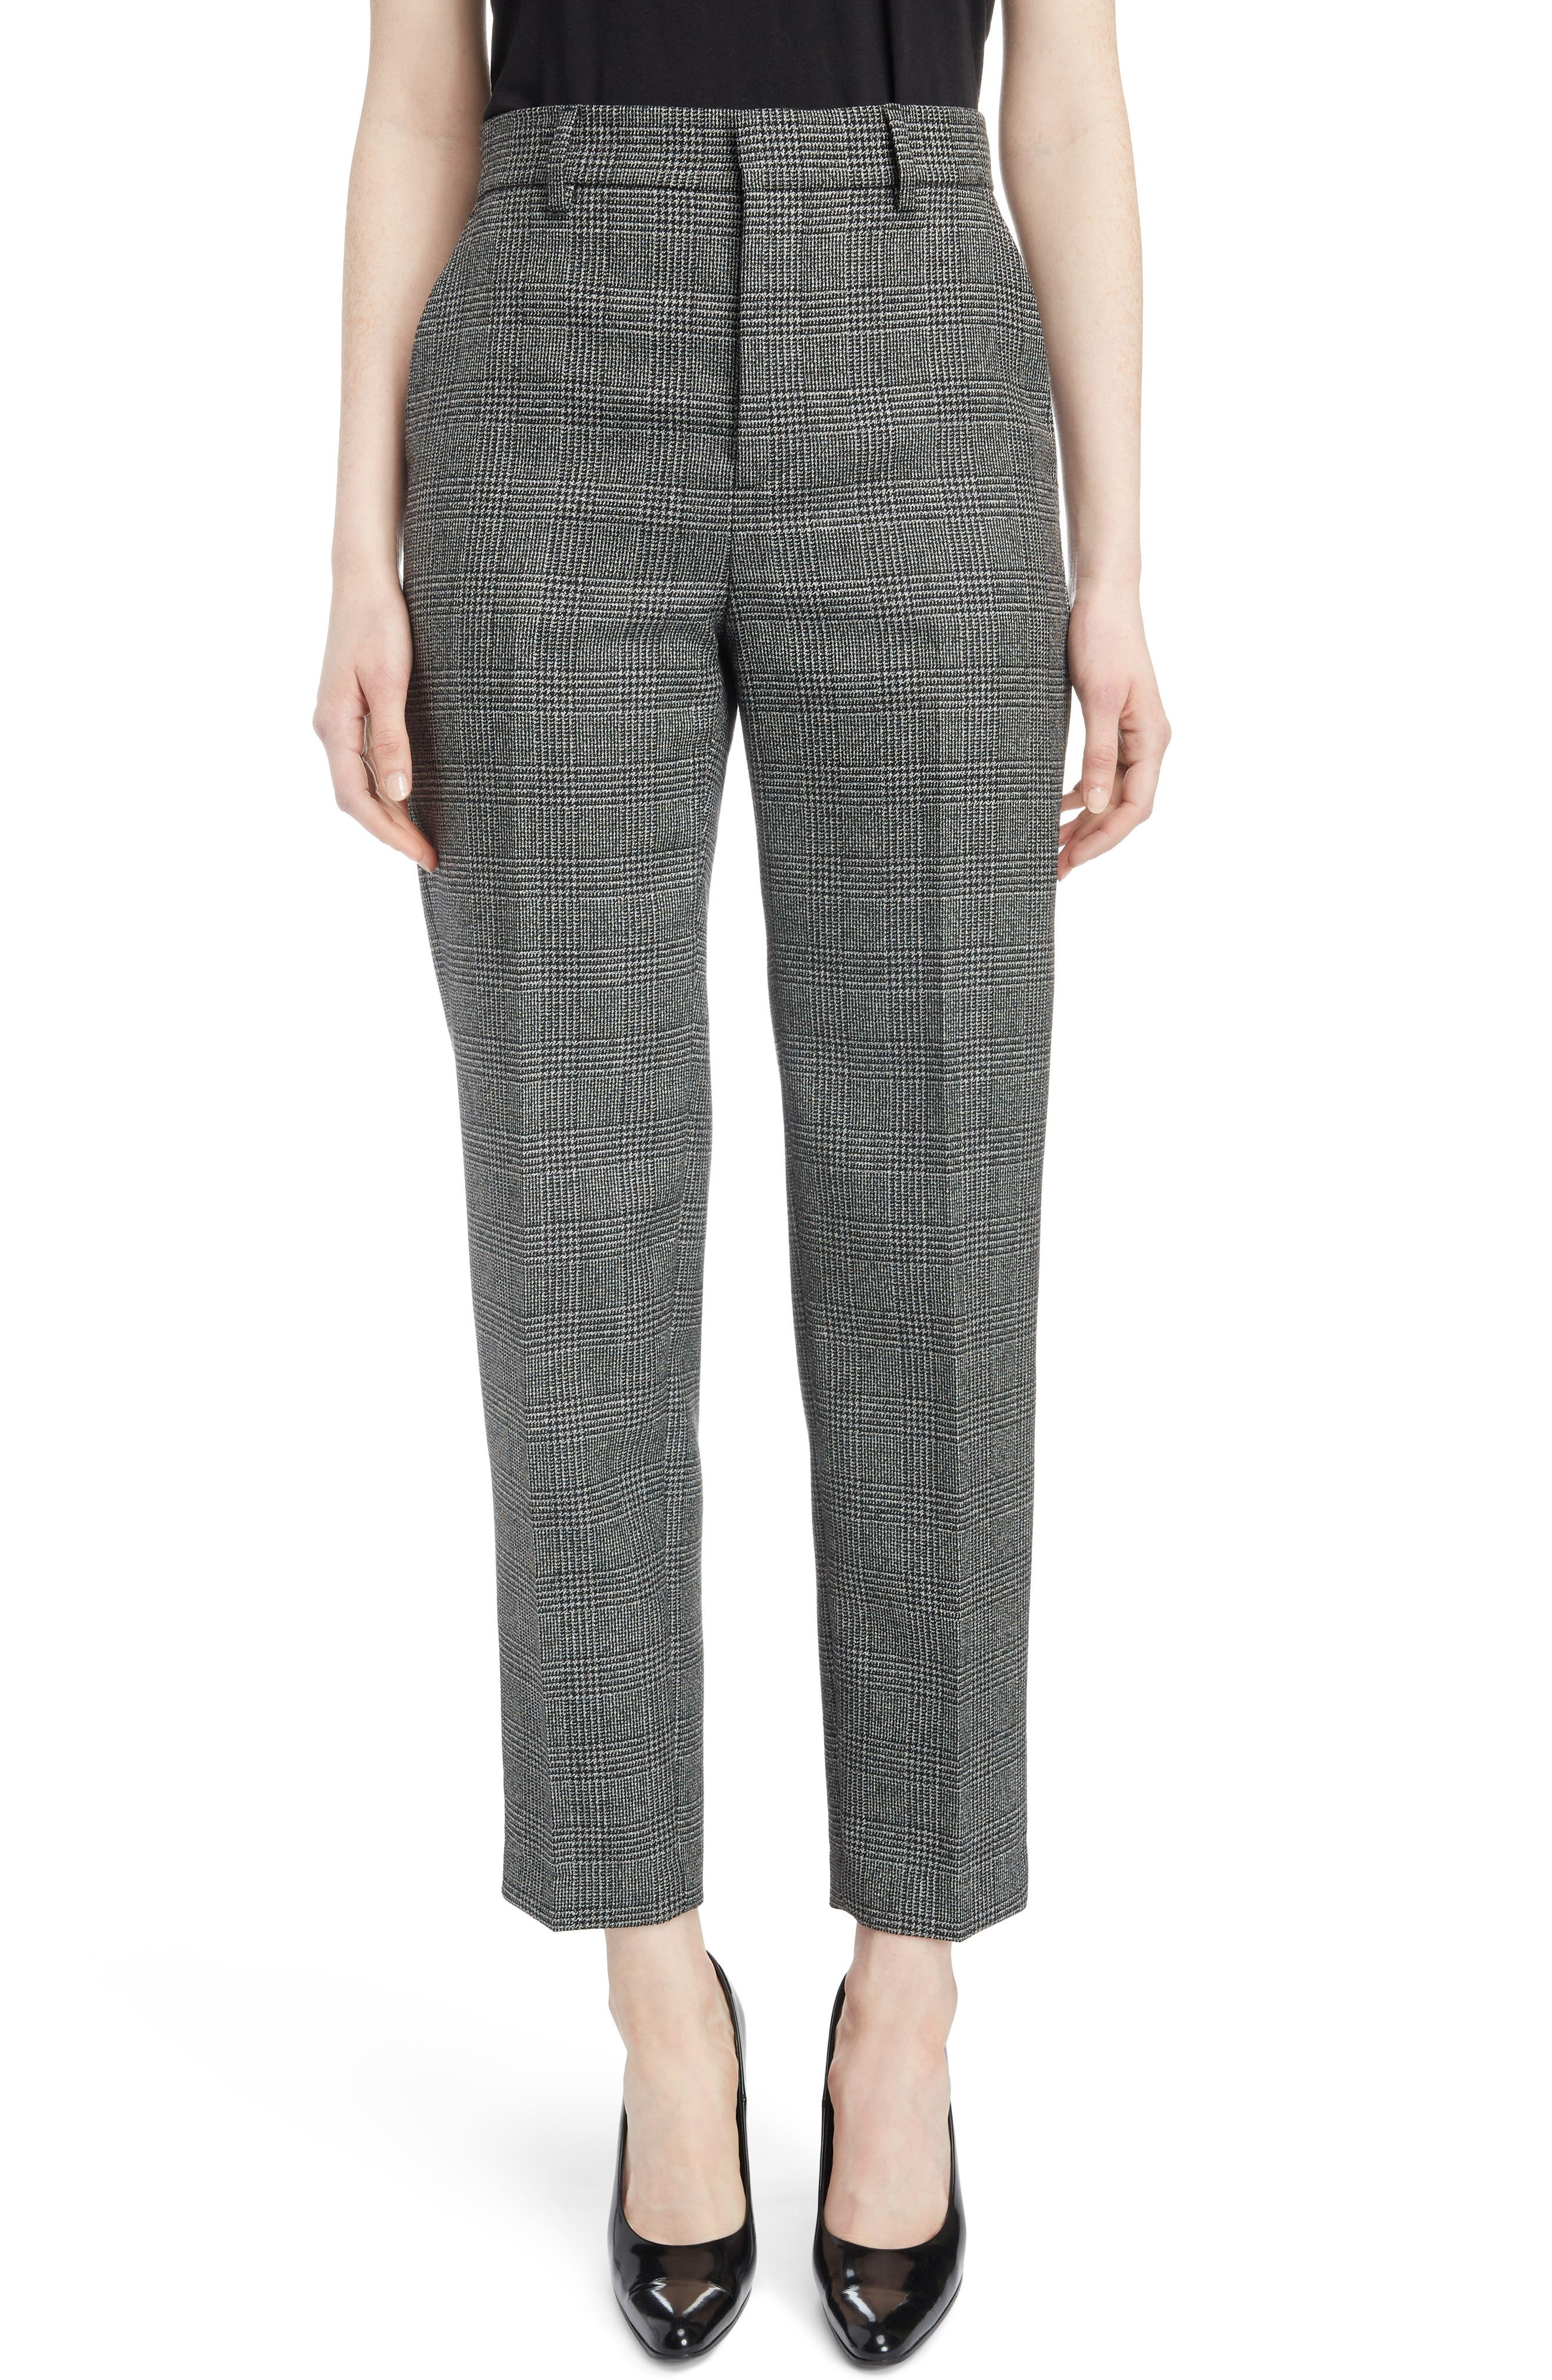 Prince of Wales Wool Carrot Trousers,                         Main,                         color, 1070-BLACK/ WHITE